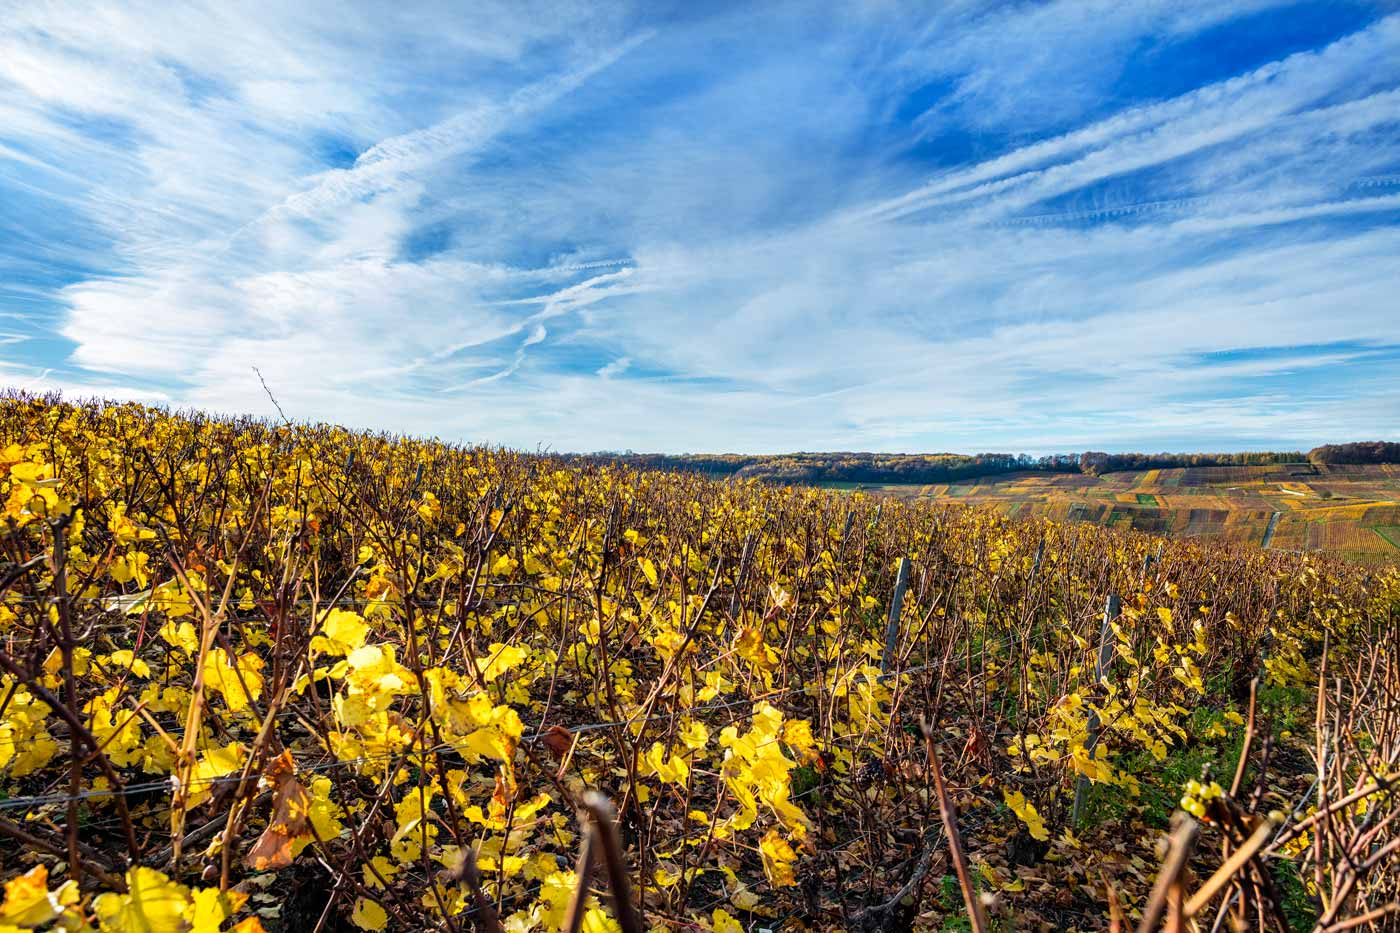 A vineyard in the french Champagne region